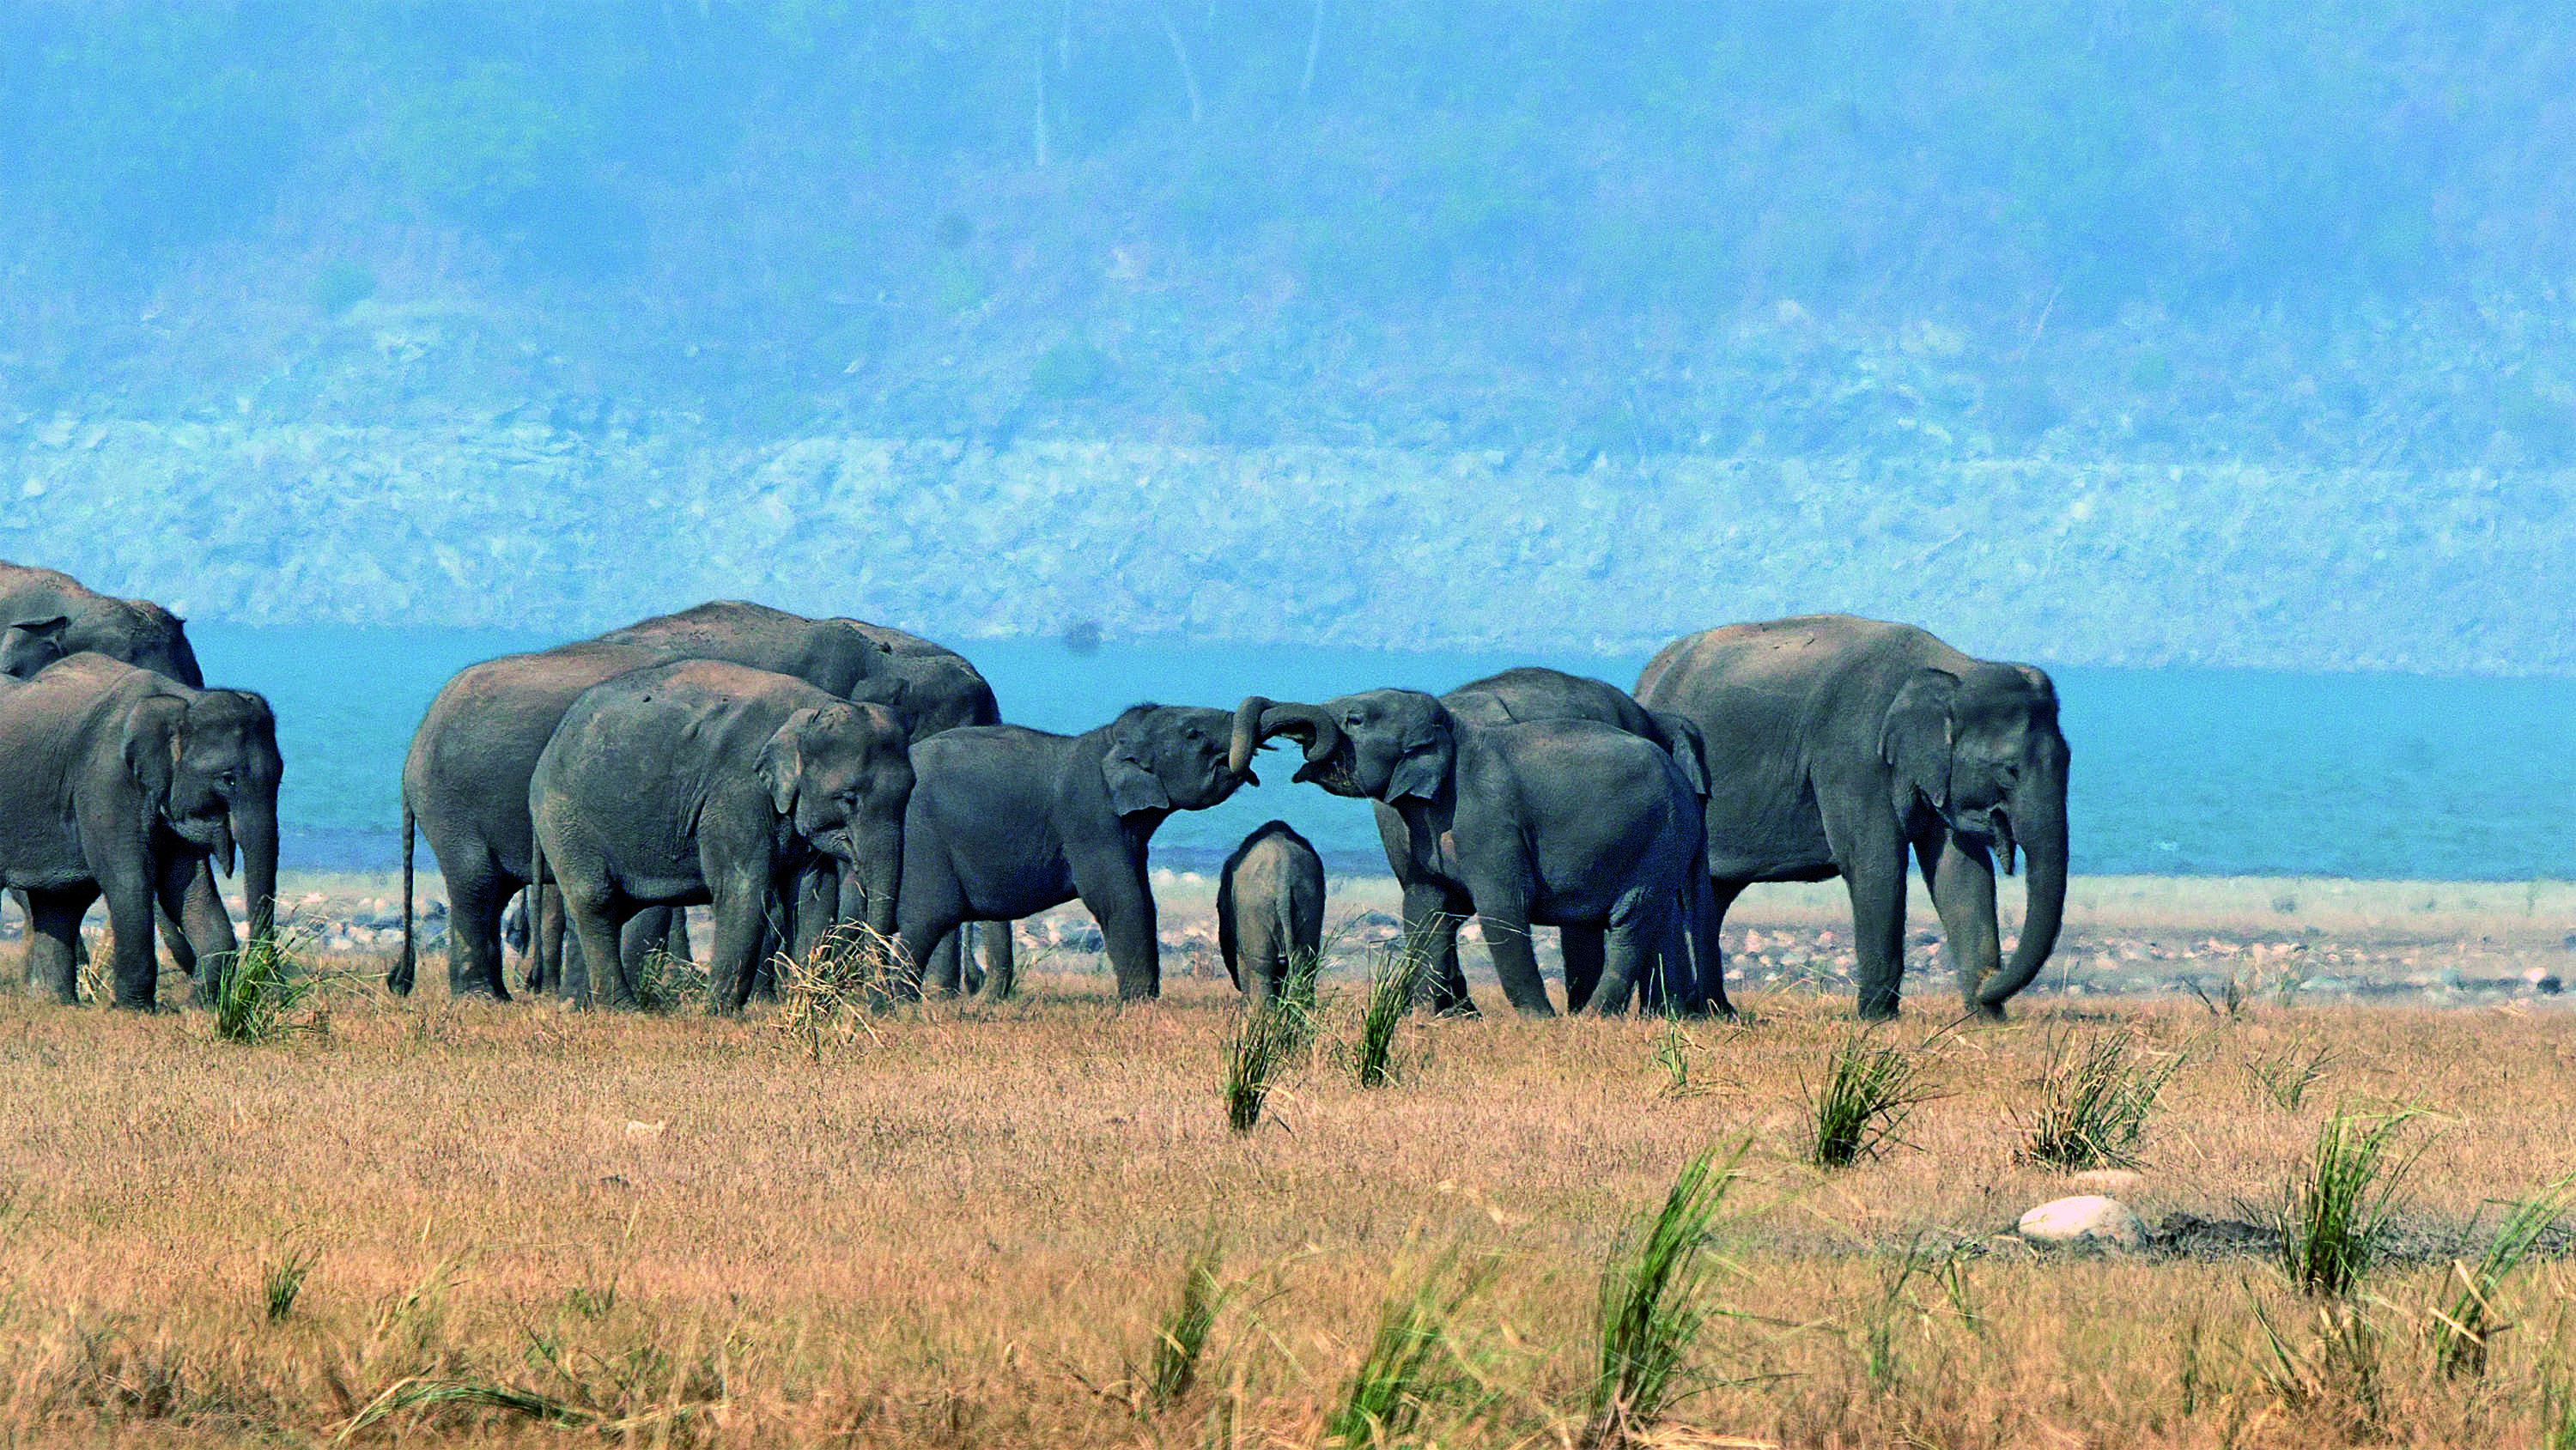 """'Mammoth Gateway' by Karthick Kumar captures an affectionate moment between elephants at Uttarakhand's Corbett Tiger Reserve. """"On his very first trip to this forest of flowing rivers, blue waters and sal-dappled glades, Karthick Kumar sighted an elephant herd with nearly 50 individuals moving towards the Ramganga river,"""" said the Sanctuary Nature Foundation. """"Spending more than two hours with these gentle giants enabled him to document such heart-warming moments."""""""